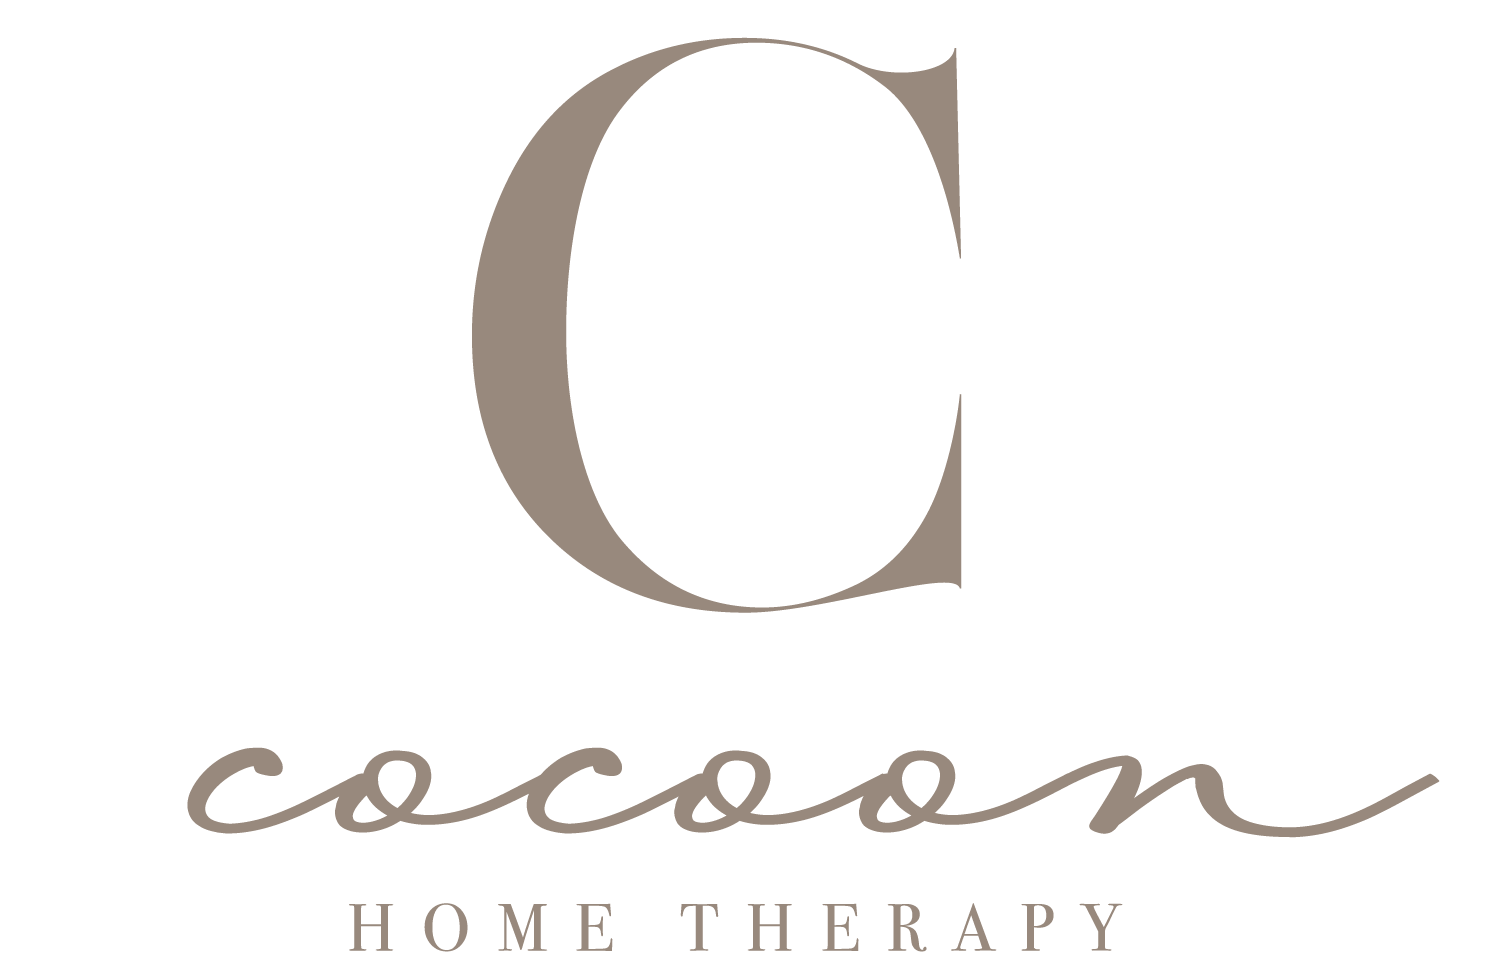 Cocoon Home Therapy